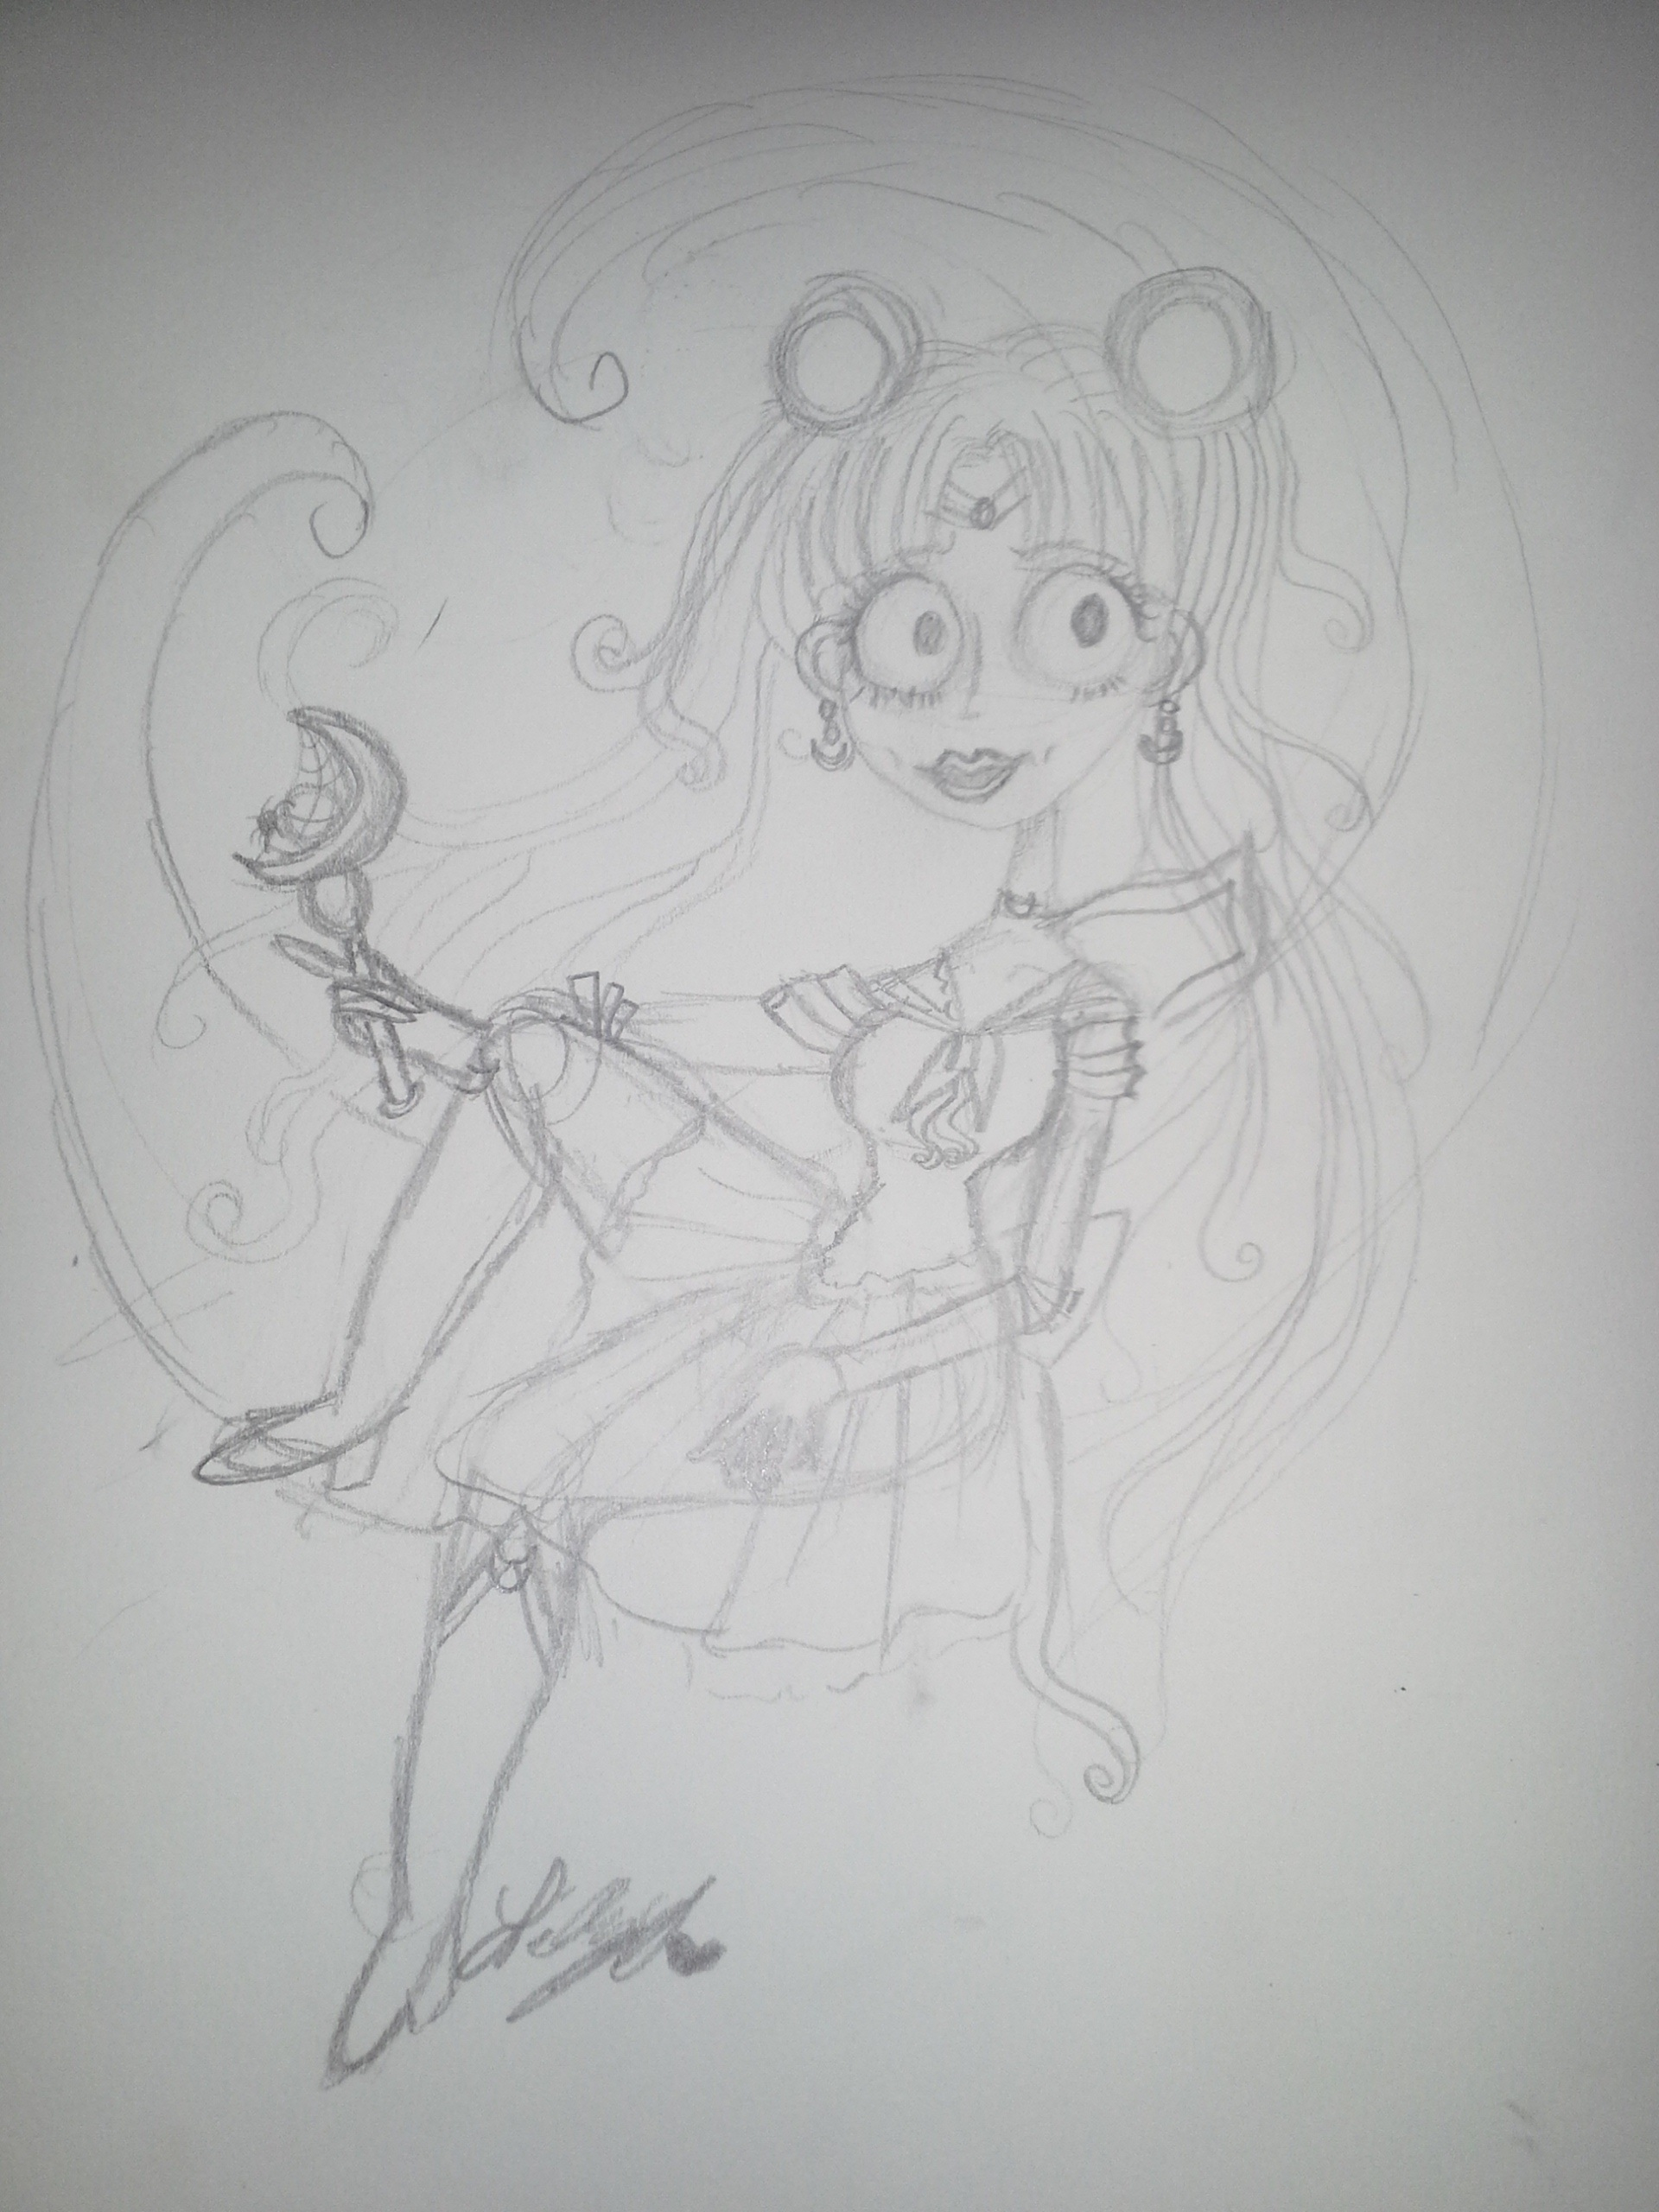 Sailor moon's new style (sketch version)